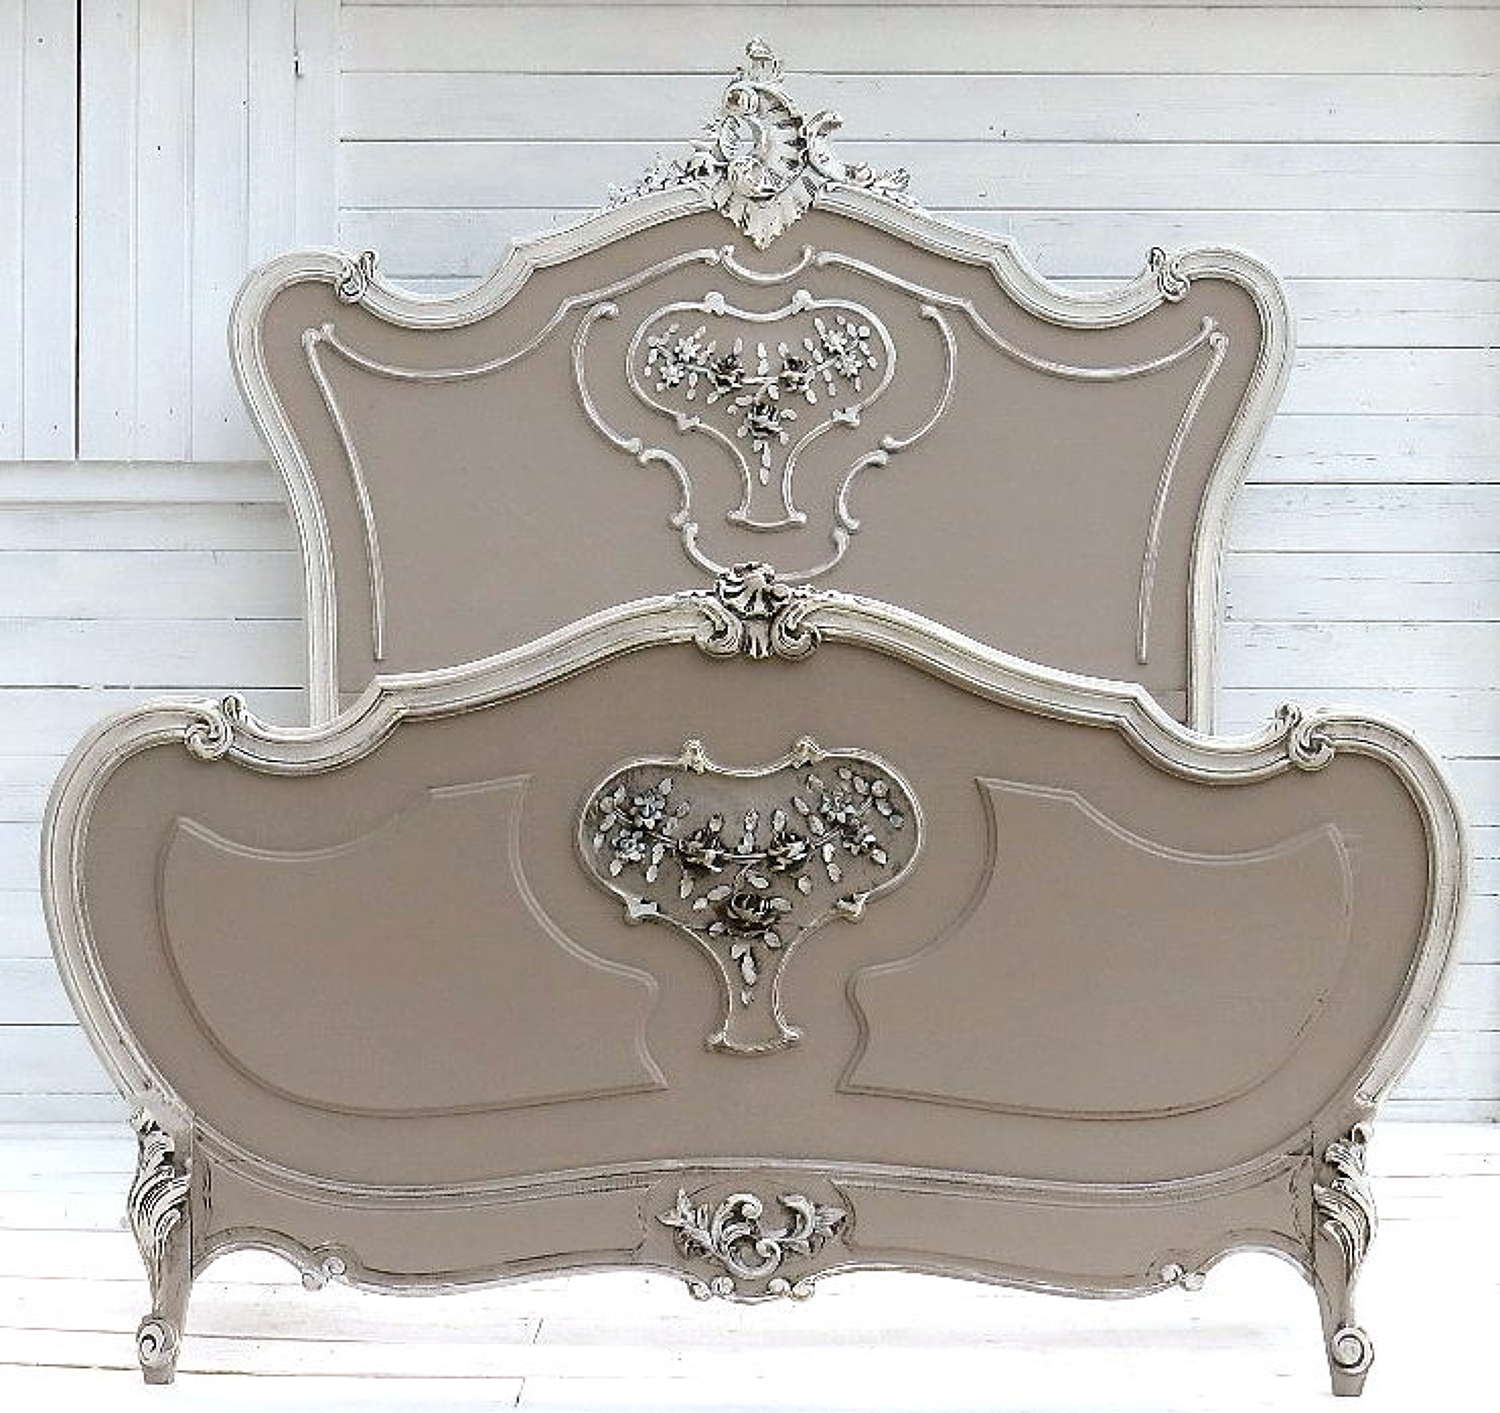 C19 FRENCH LOUIS XV revival BED LARGE SINGLE OR DOUBLE PAINTED SHABBY CHATEAU CHIC